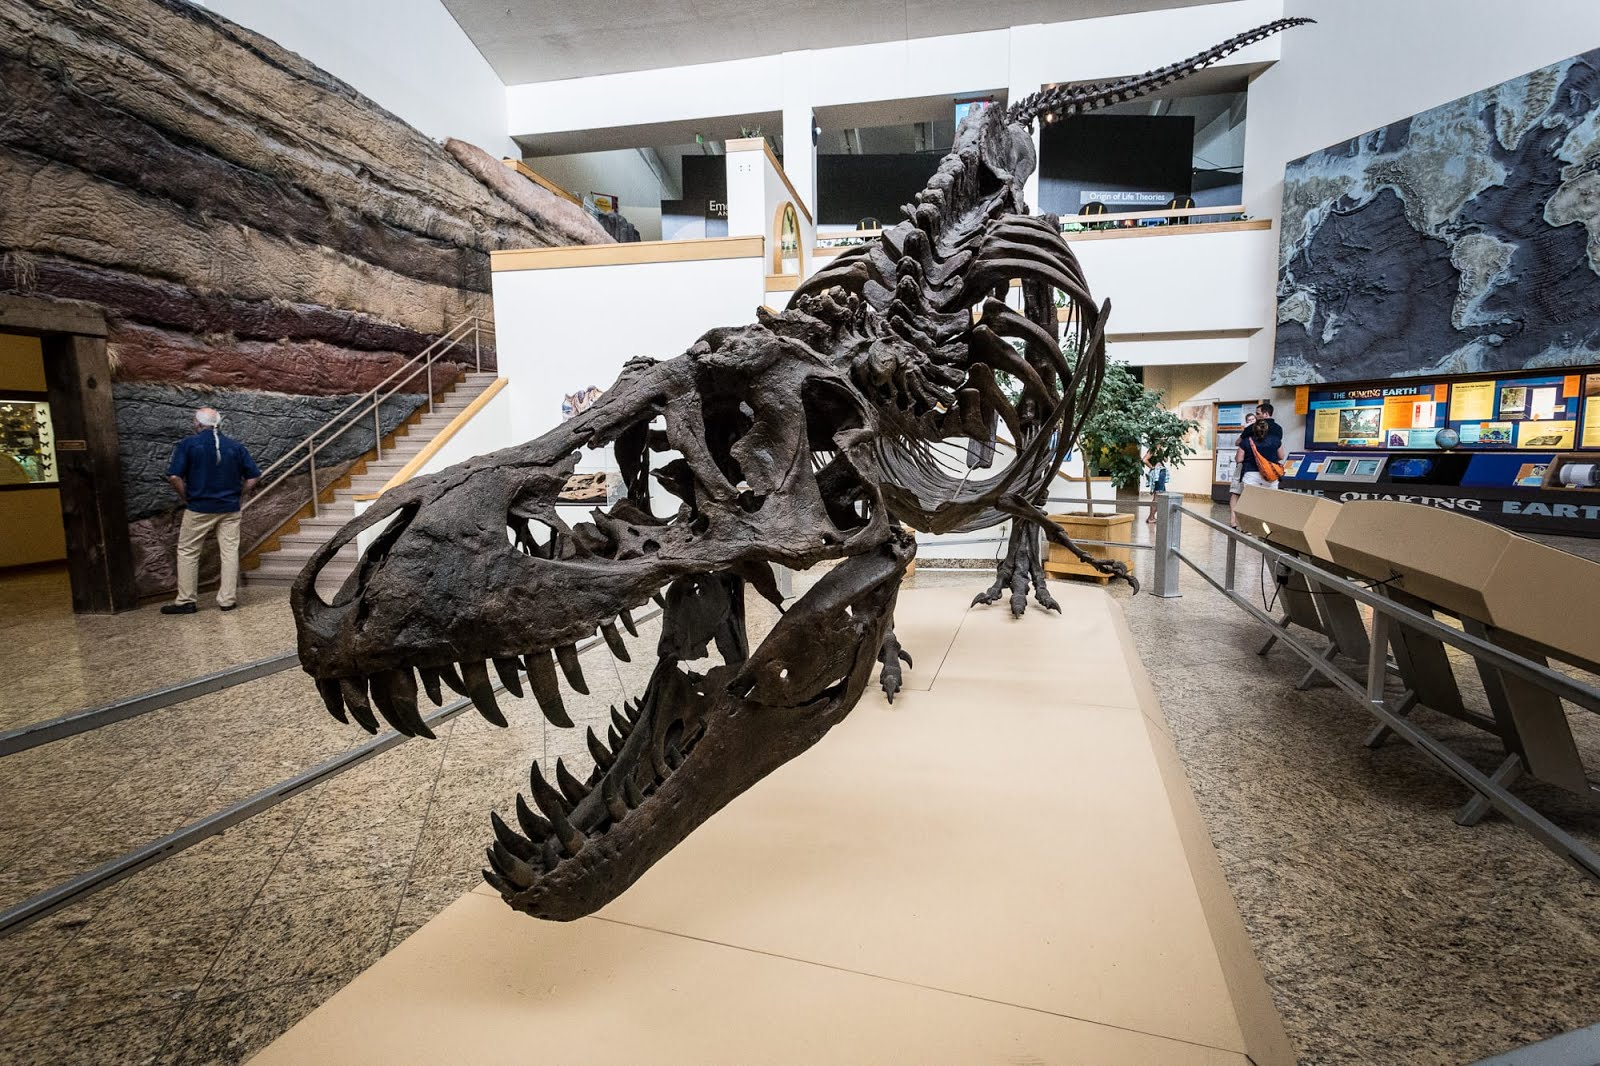 The New Mexico Museum of Natural History and Science is open every day from 9 a.m. to 5 p.m., and from to 9 p.m. on the first Friday of every month.